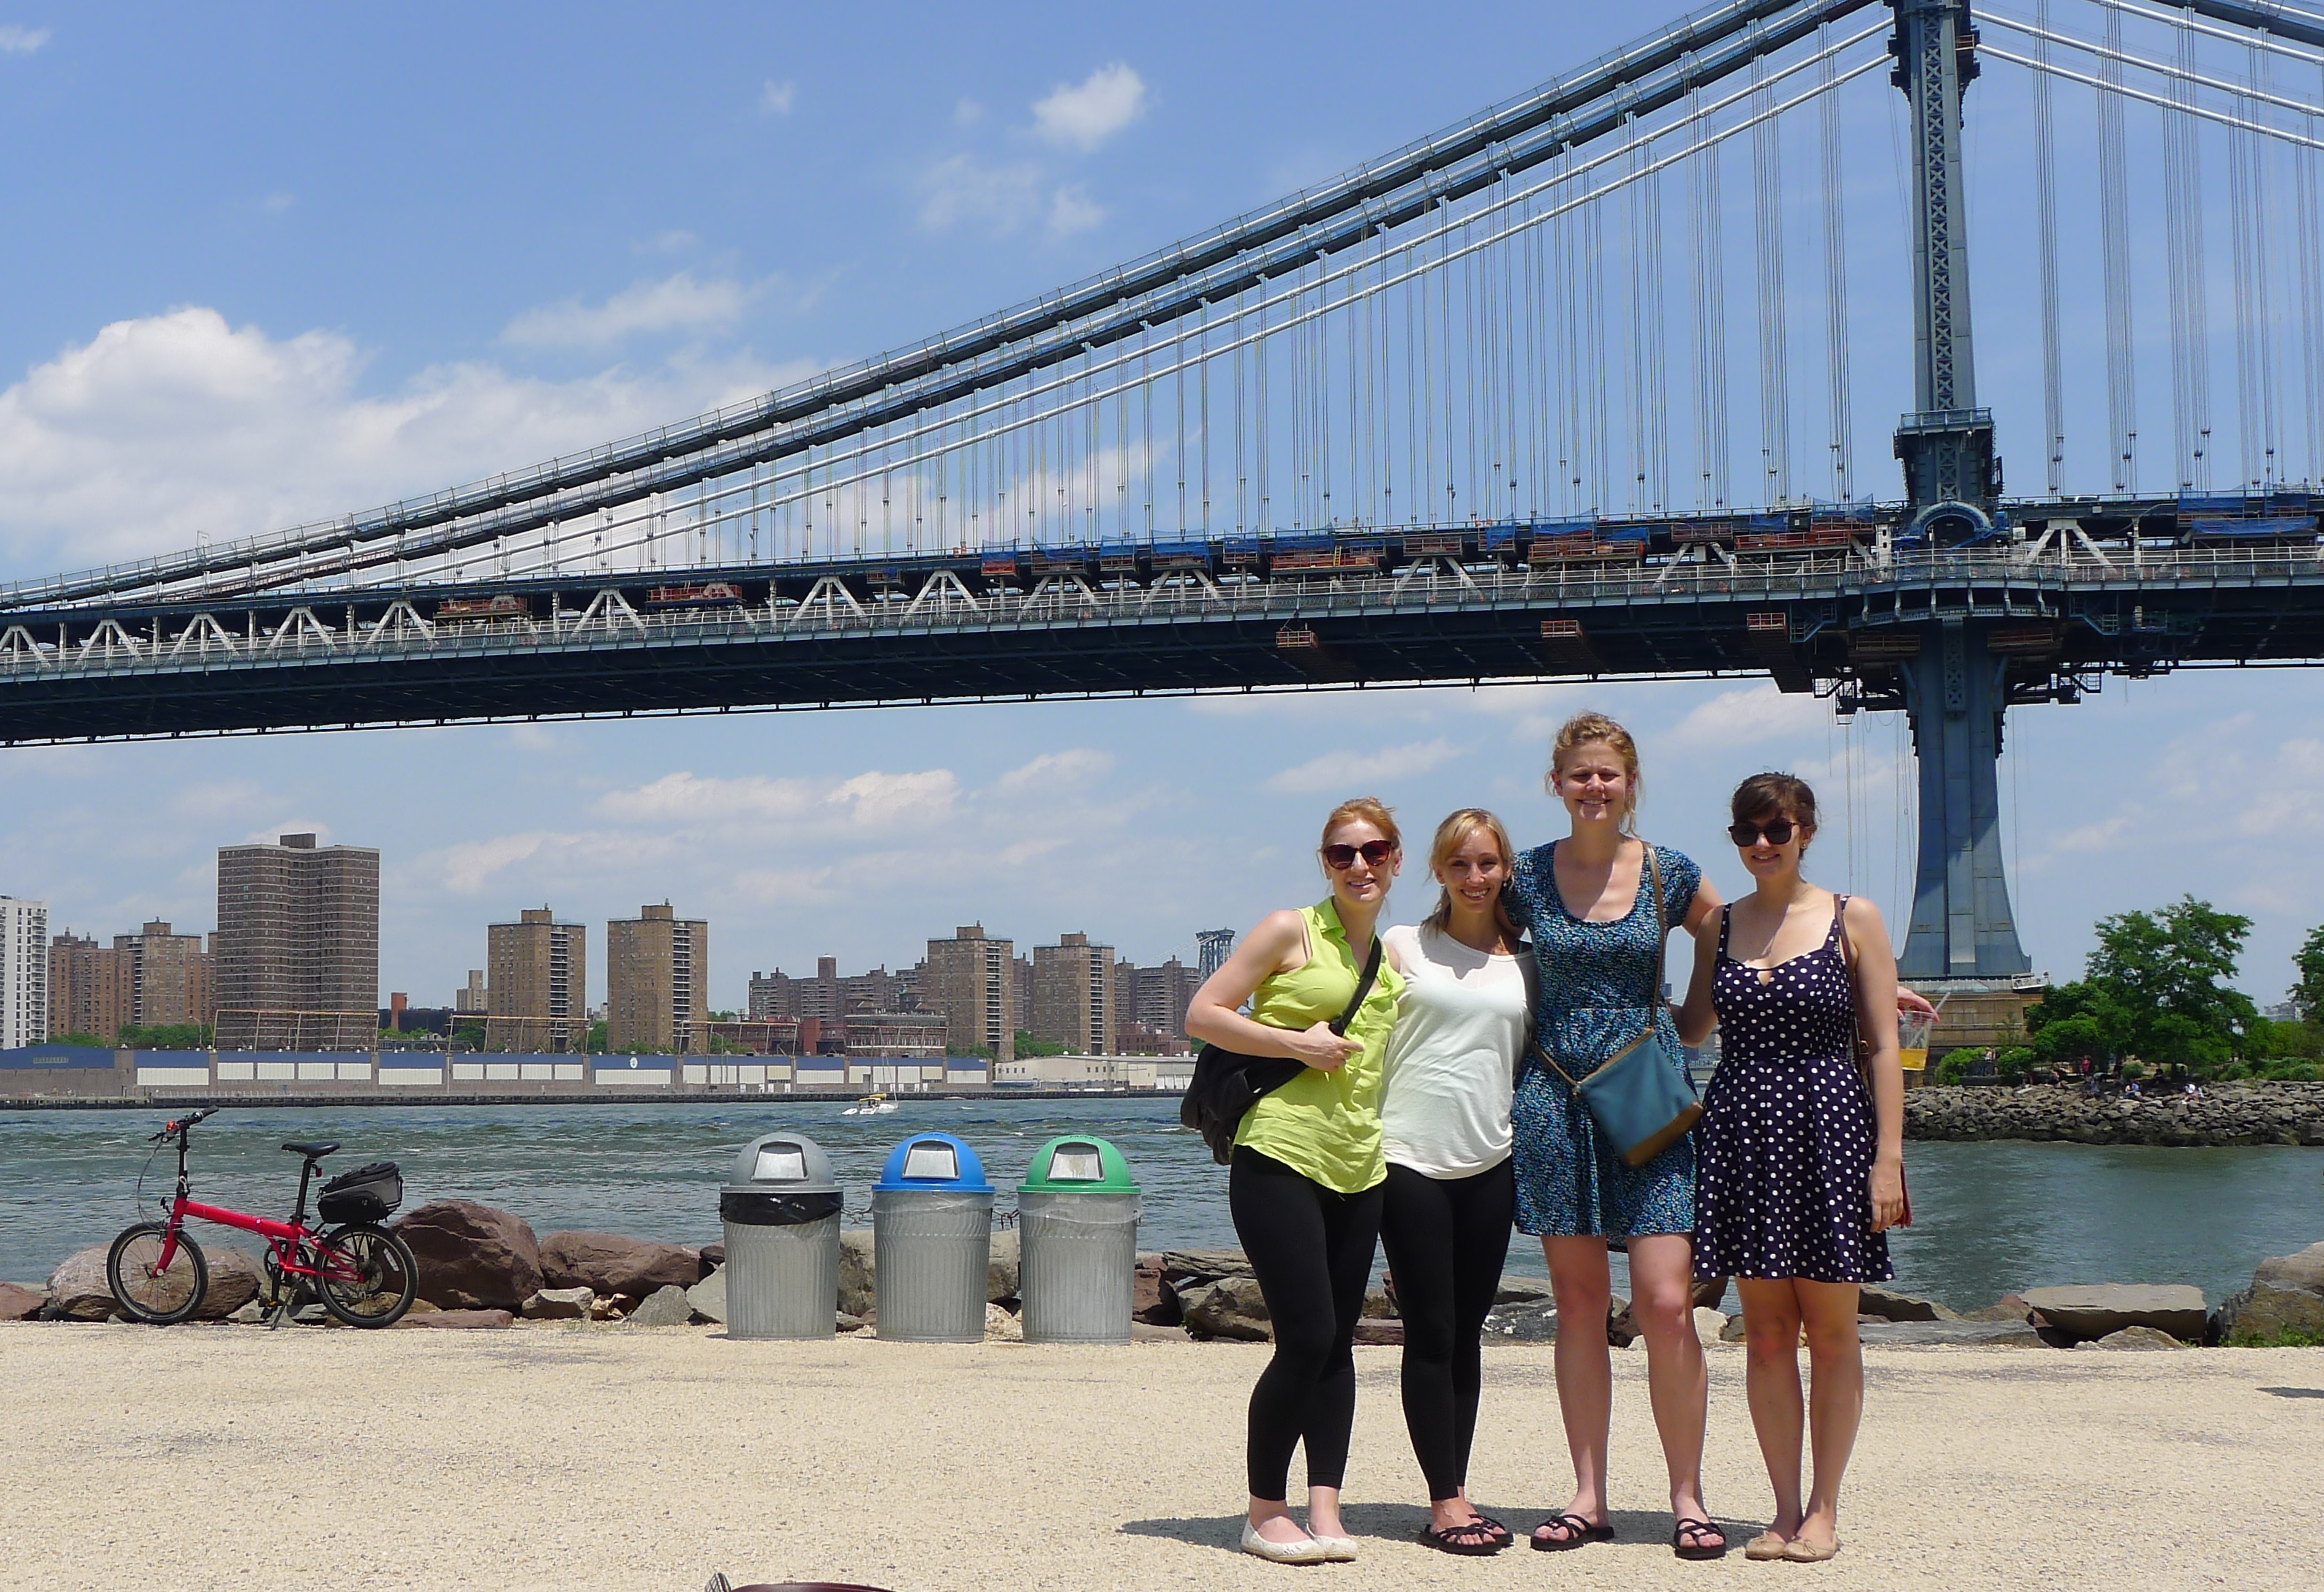 Manhattan Bridge (yes, I realise we're posing by bins)